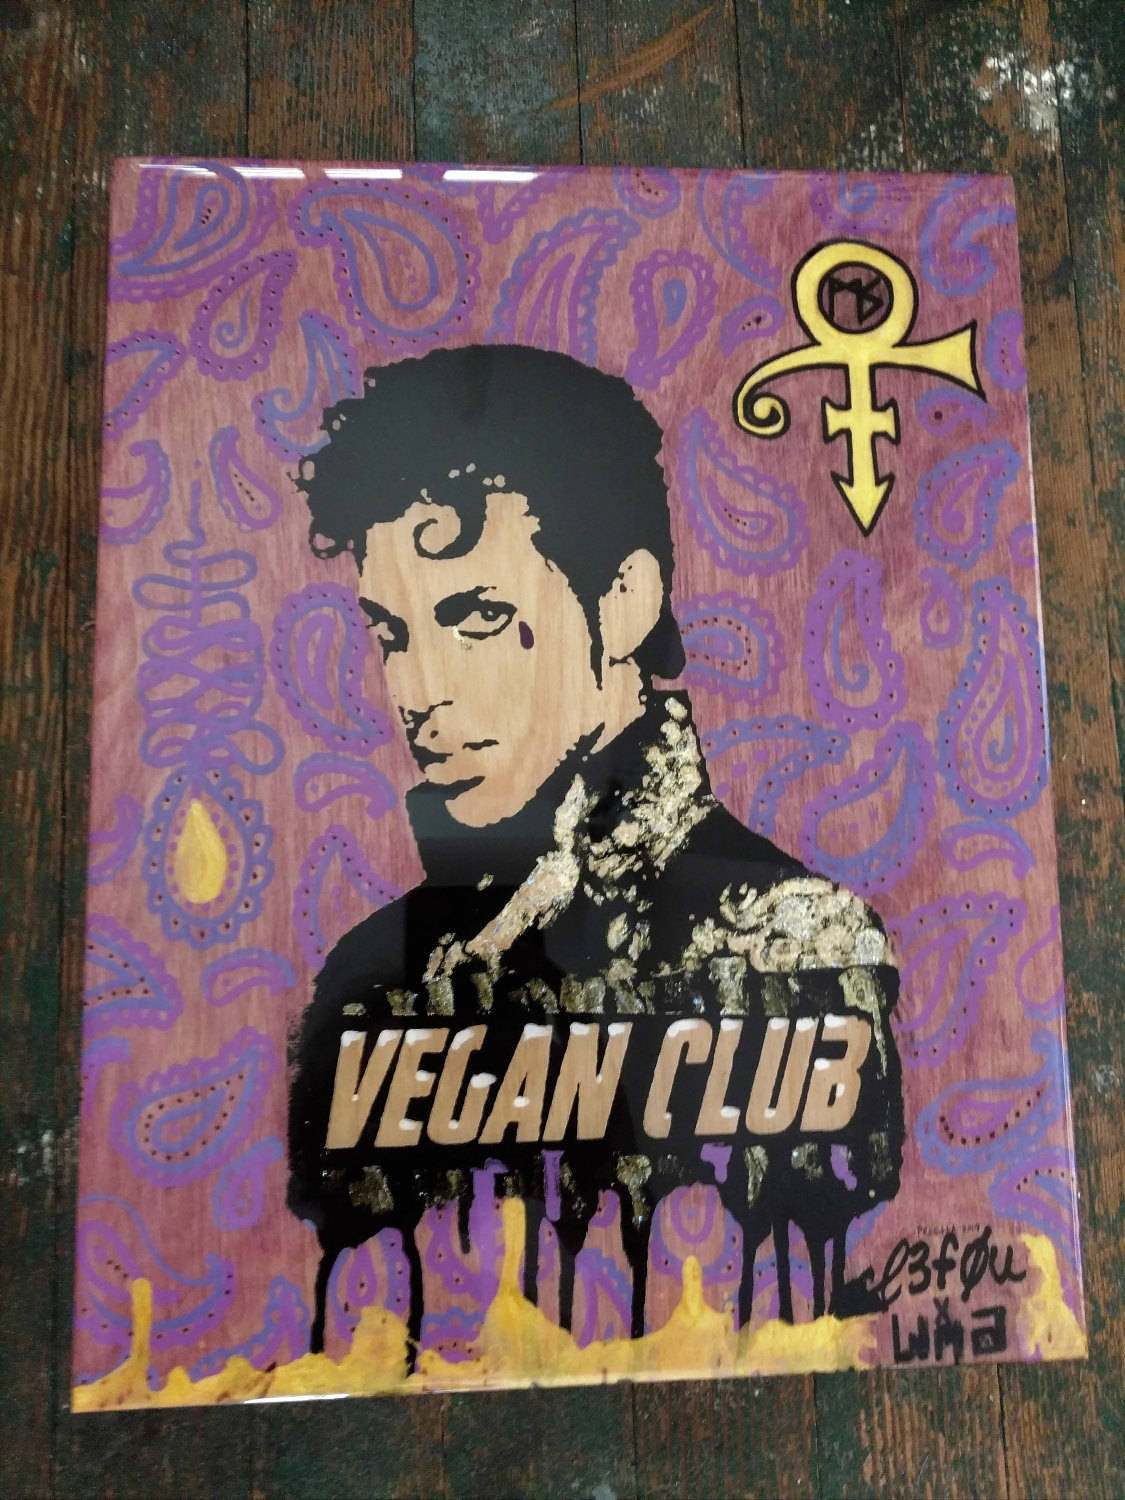 "SOLD - 11x14 Original Artwork Collab w Anthony Proetta Jr @_actions_not_words ""Vegan Club"" feat Prince signed L3F0u"